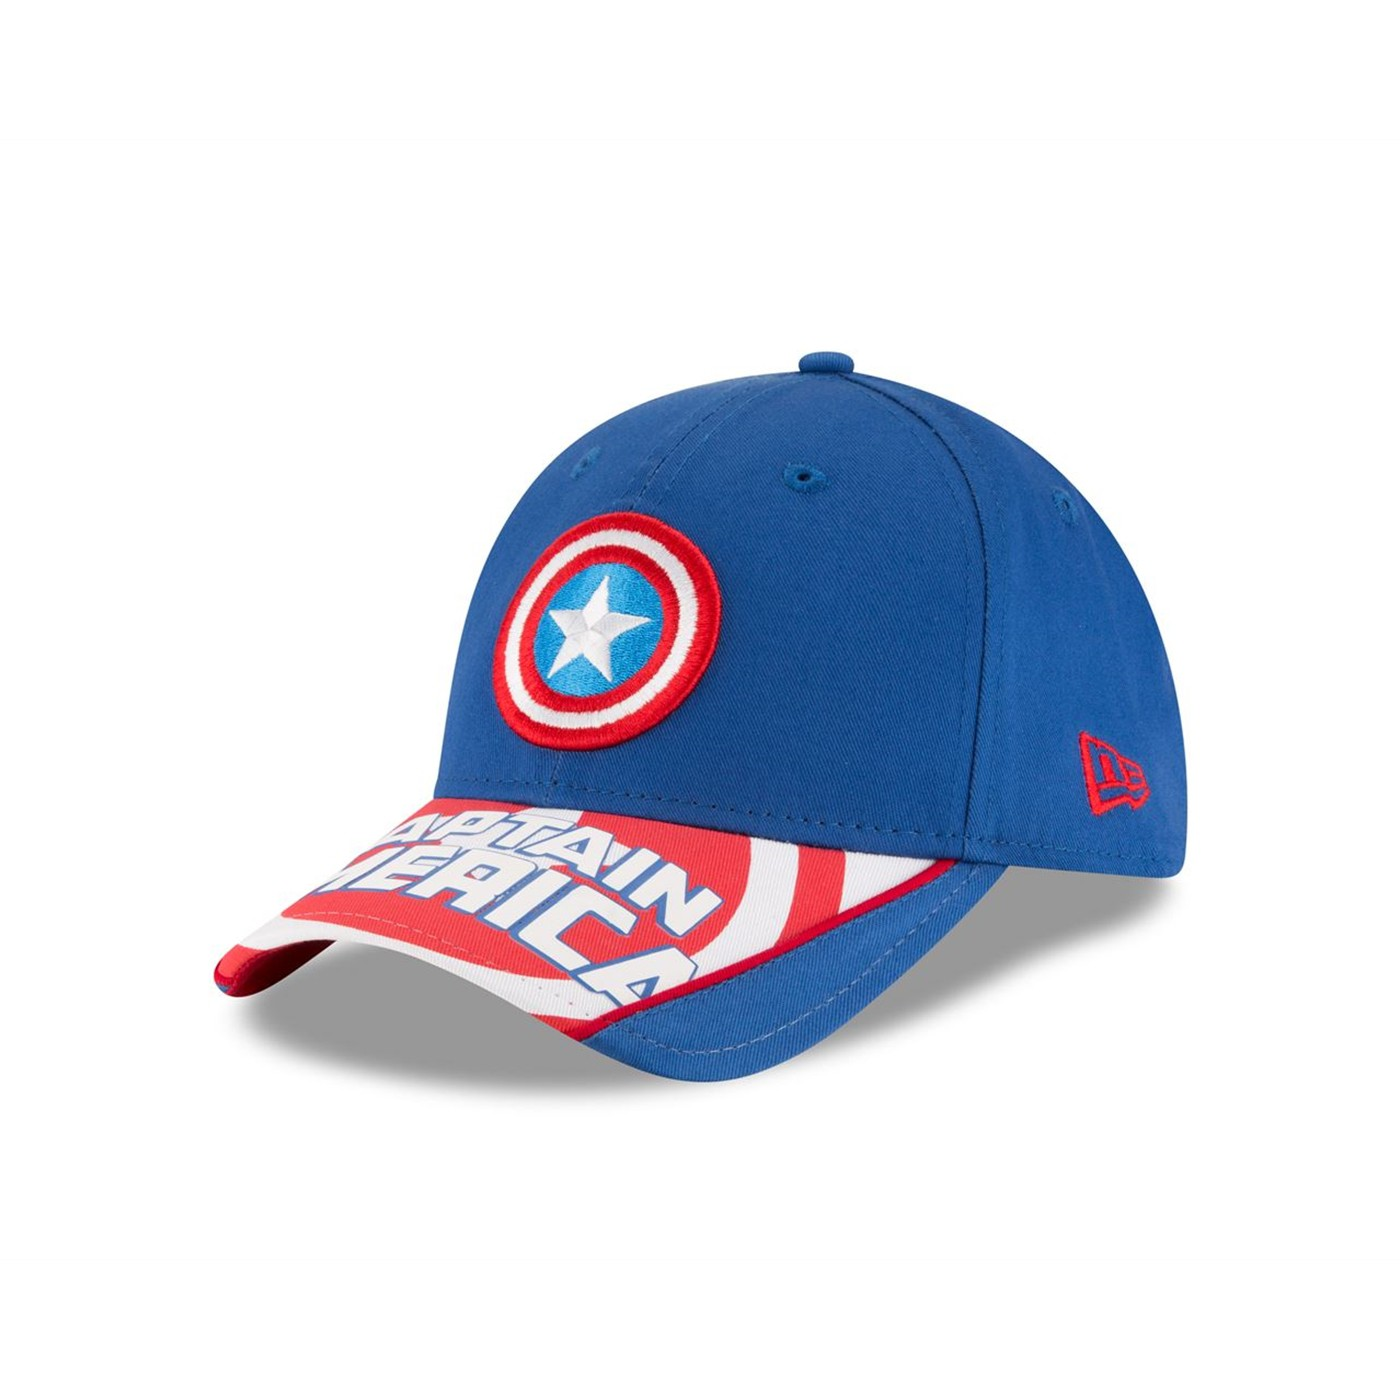 Captain America Symbol with Text Brim New Era 9Forty Adjustable Hat